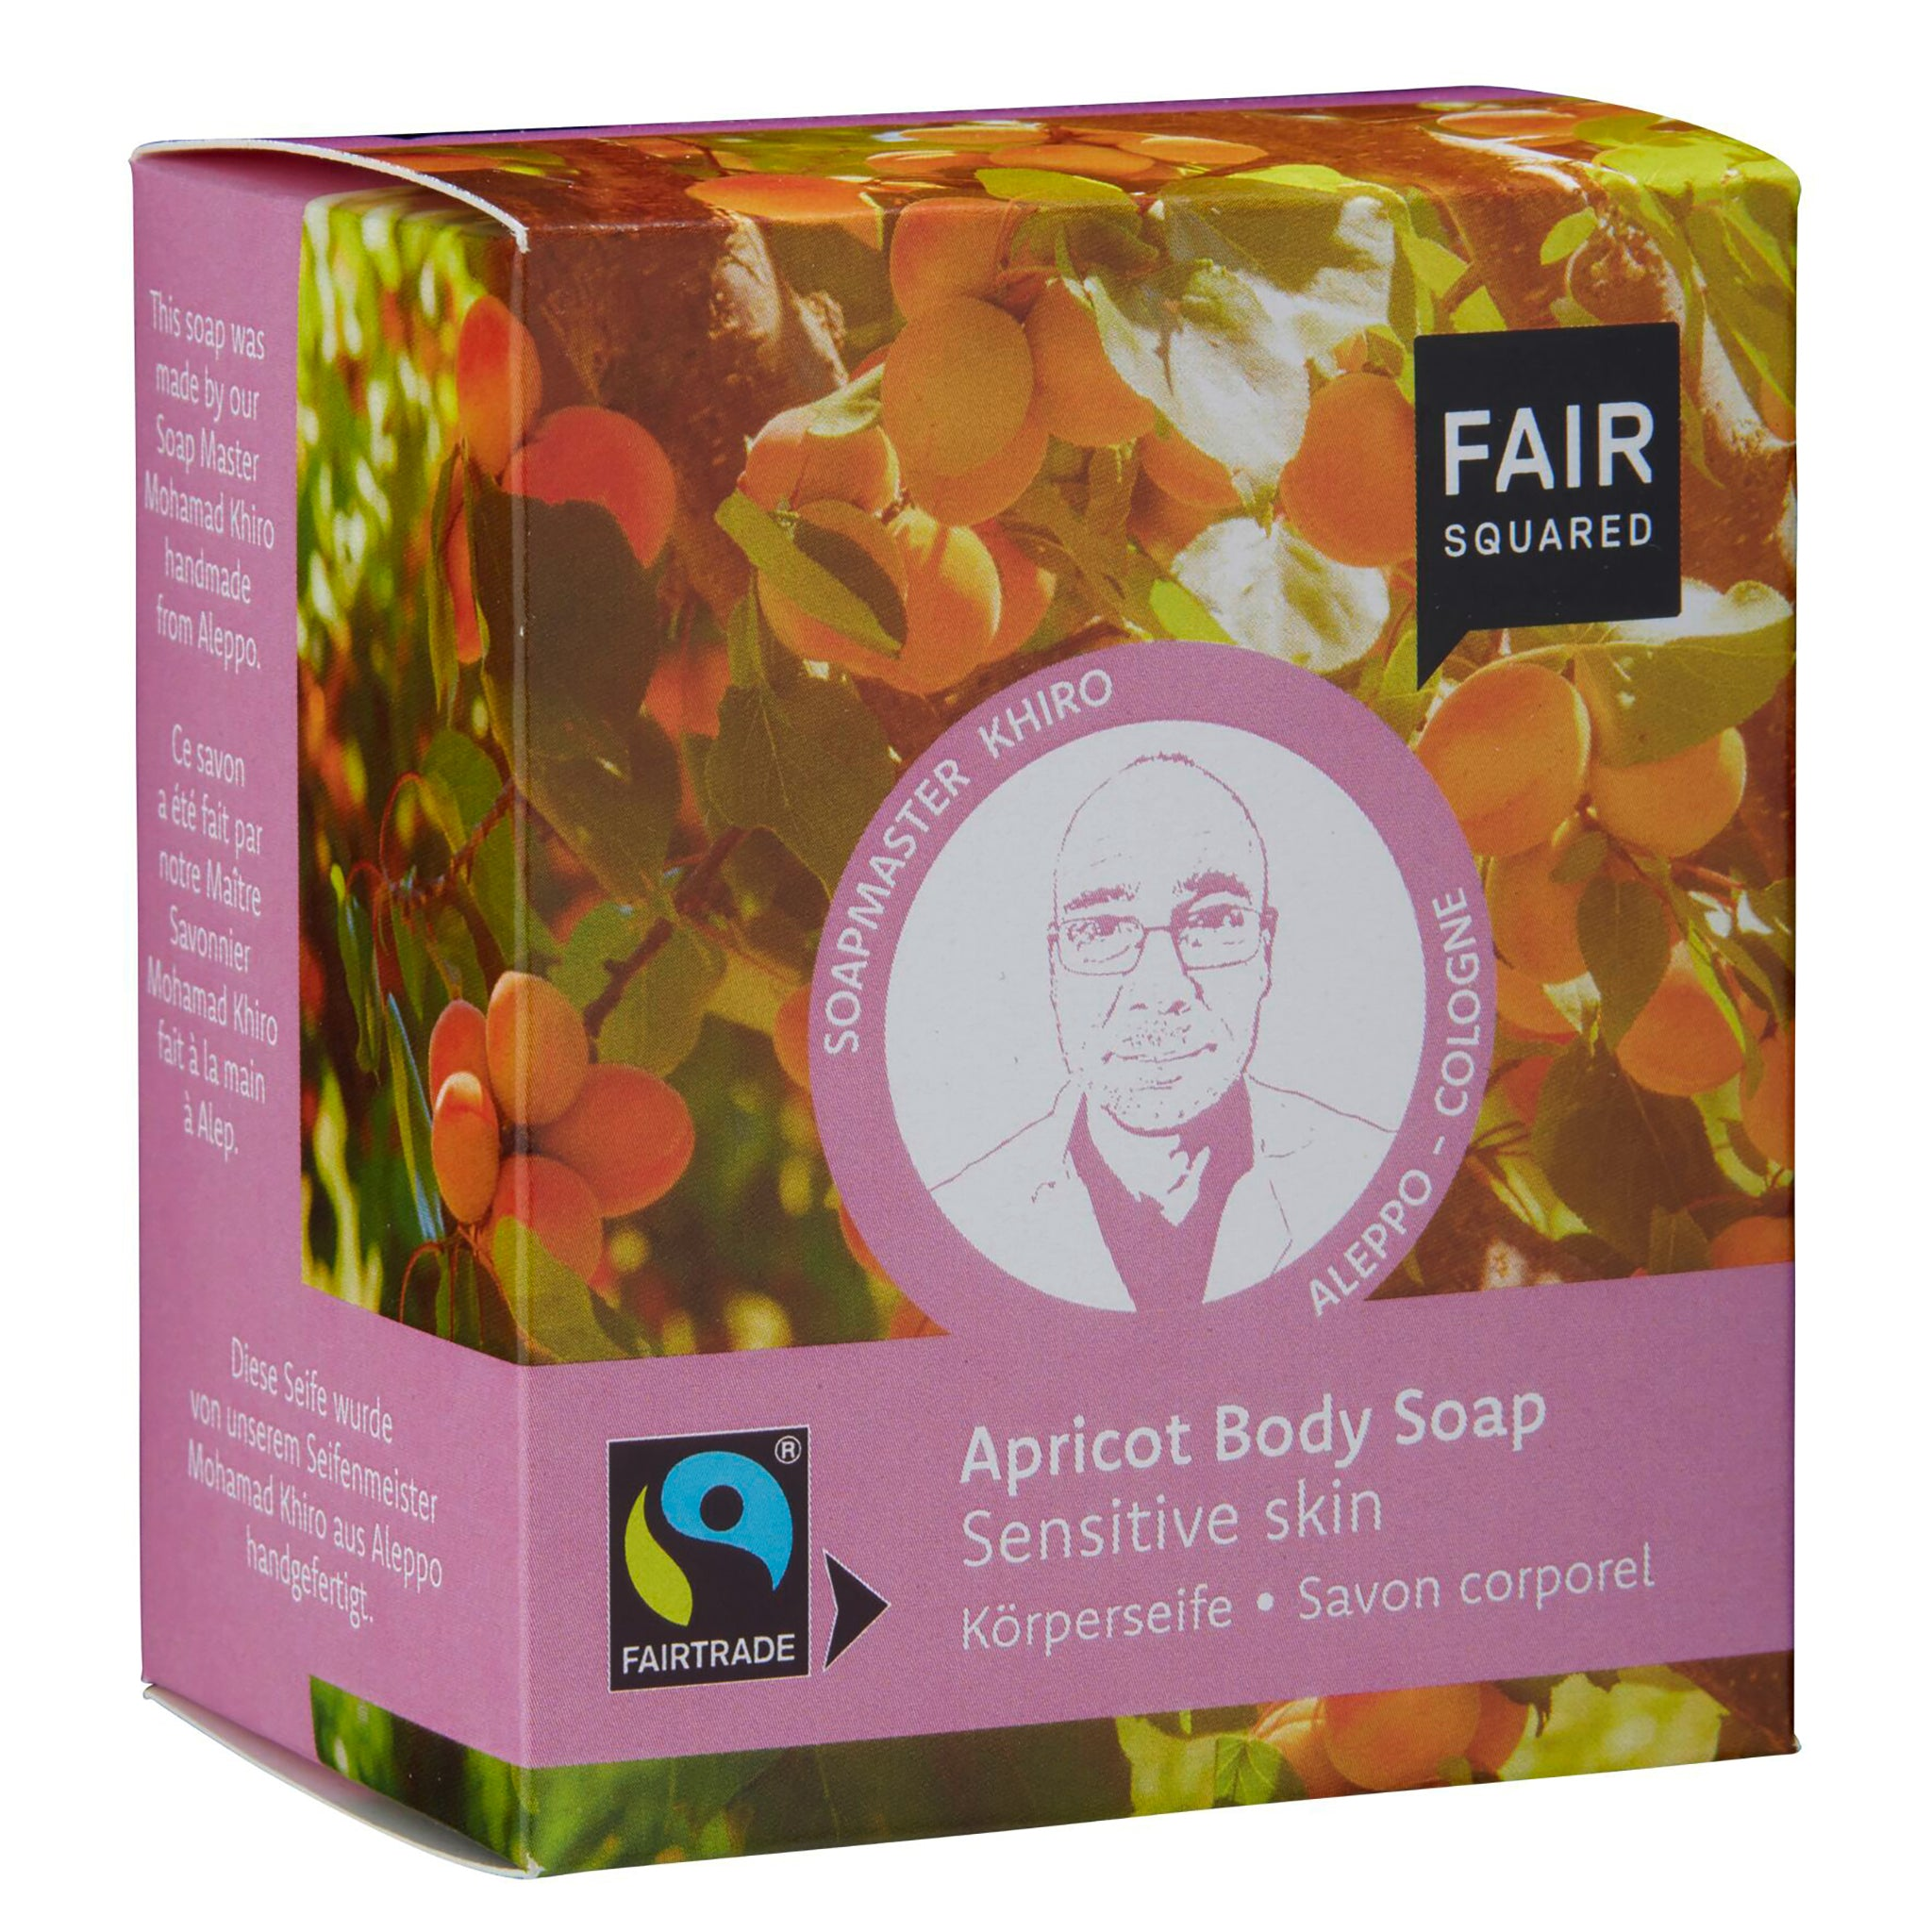 Apricot Body Soap with Cotton Soap Bag - For Sensitive Skin